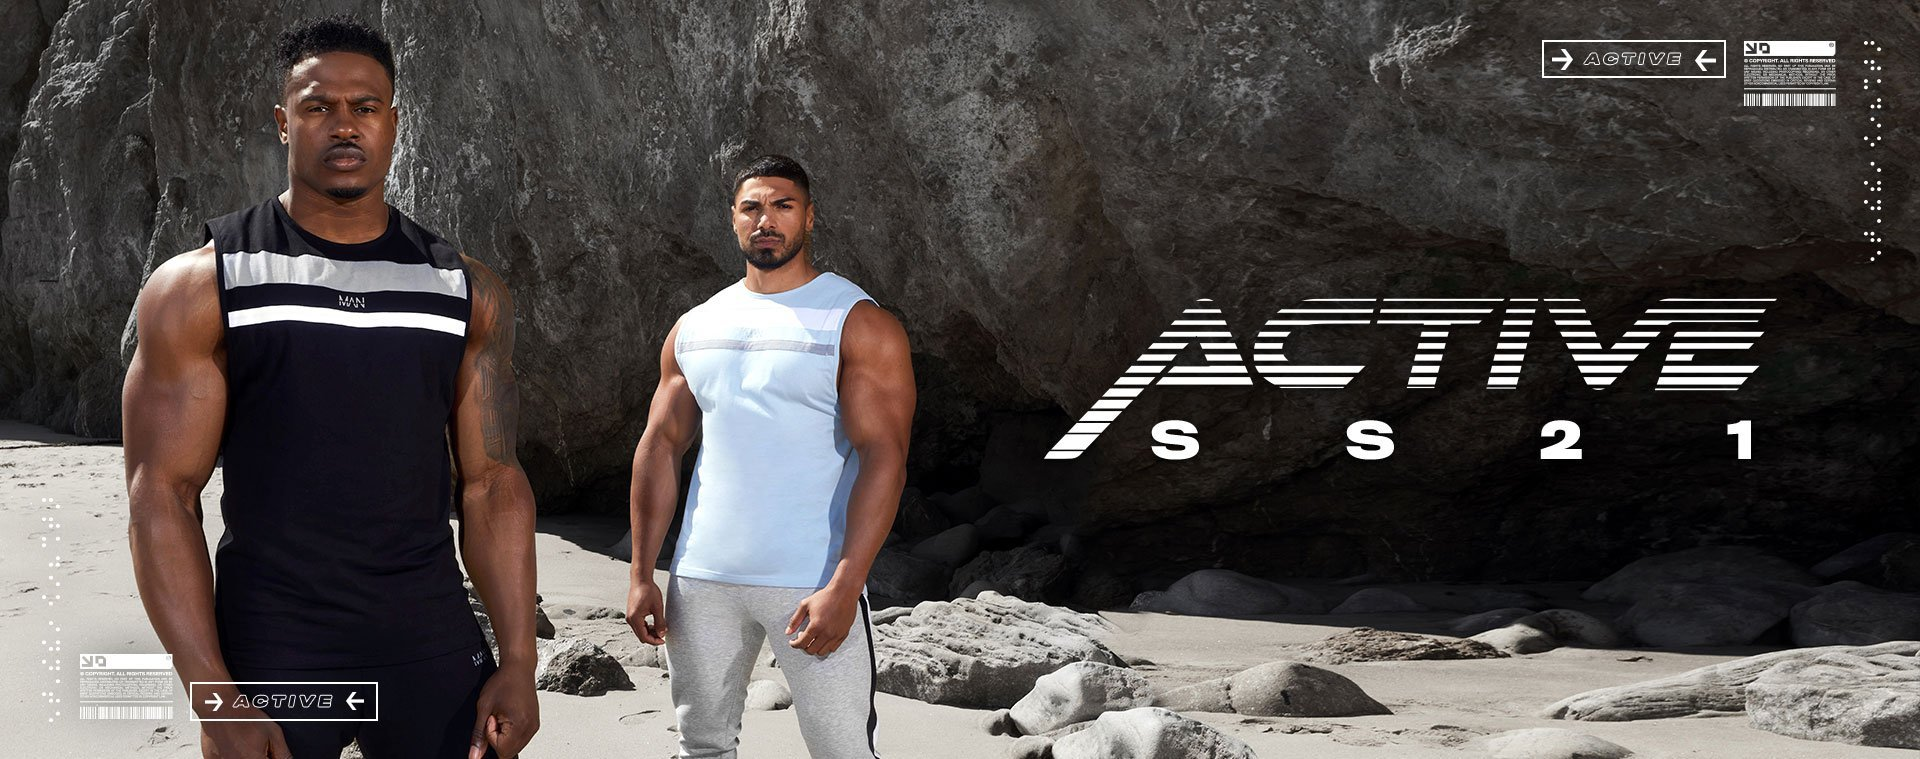 Men's Active SS21 Collection